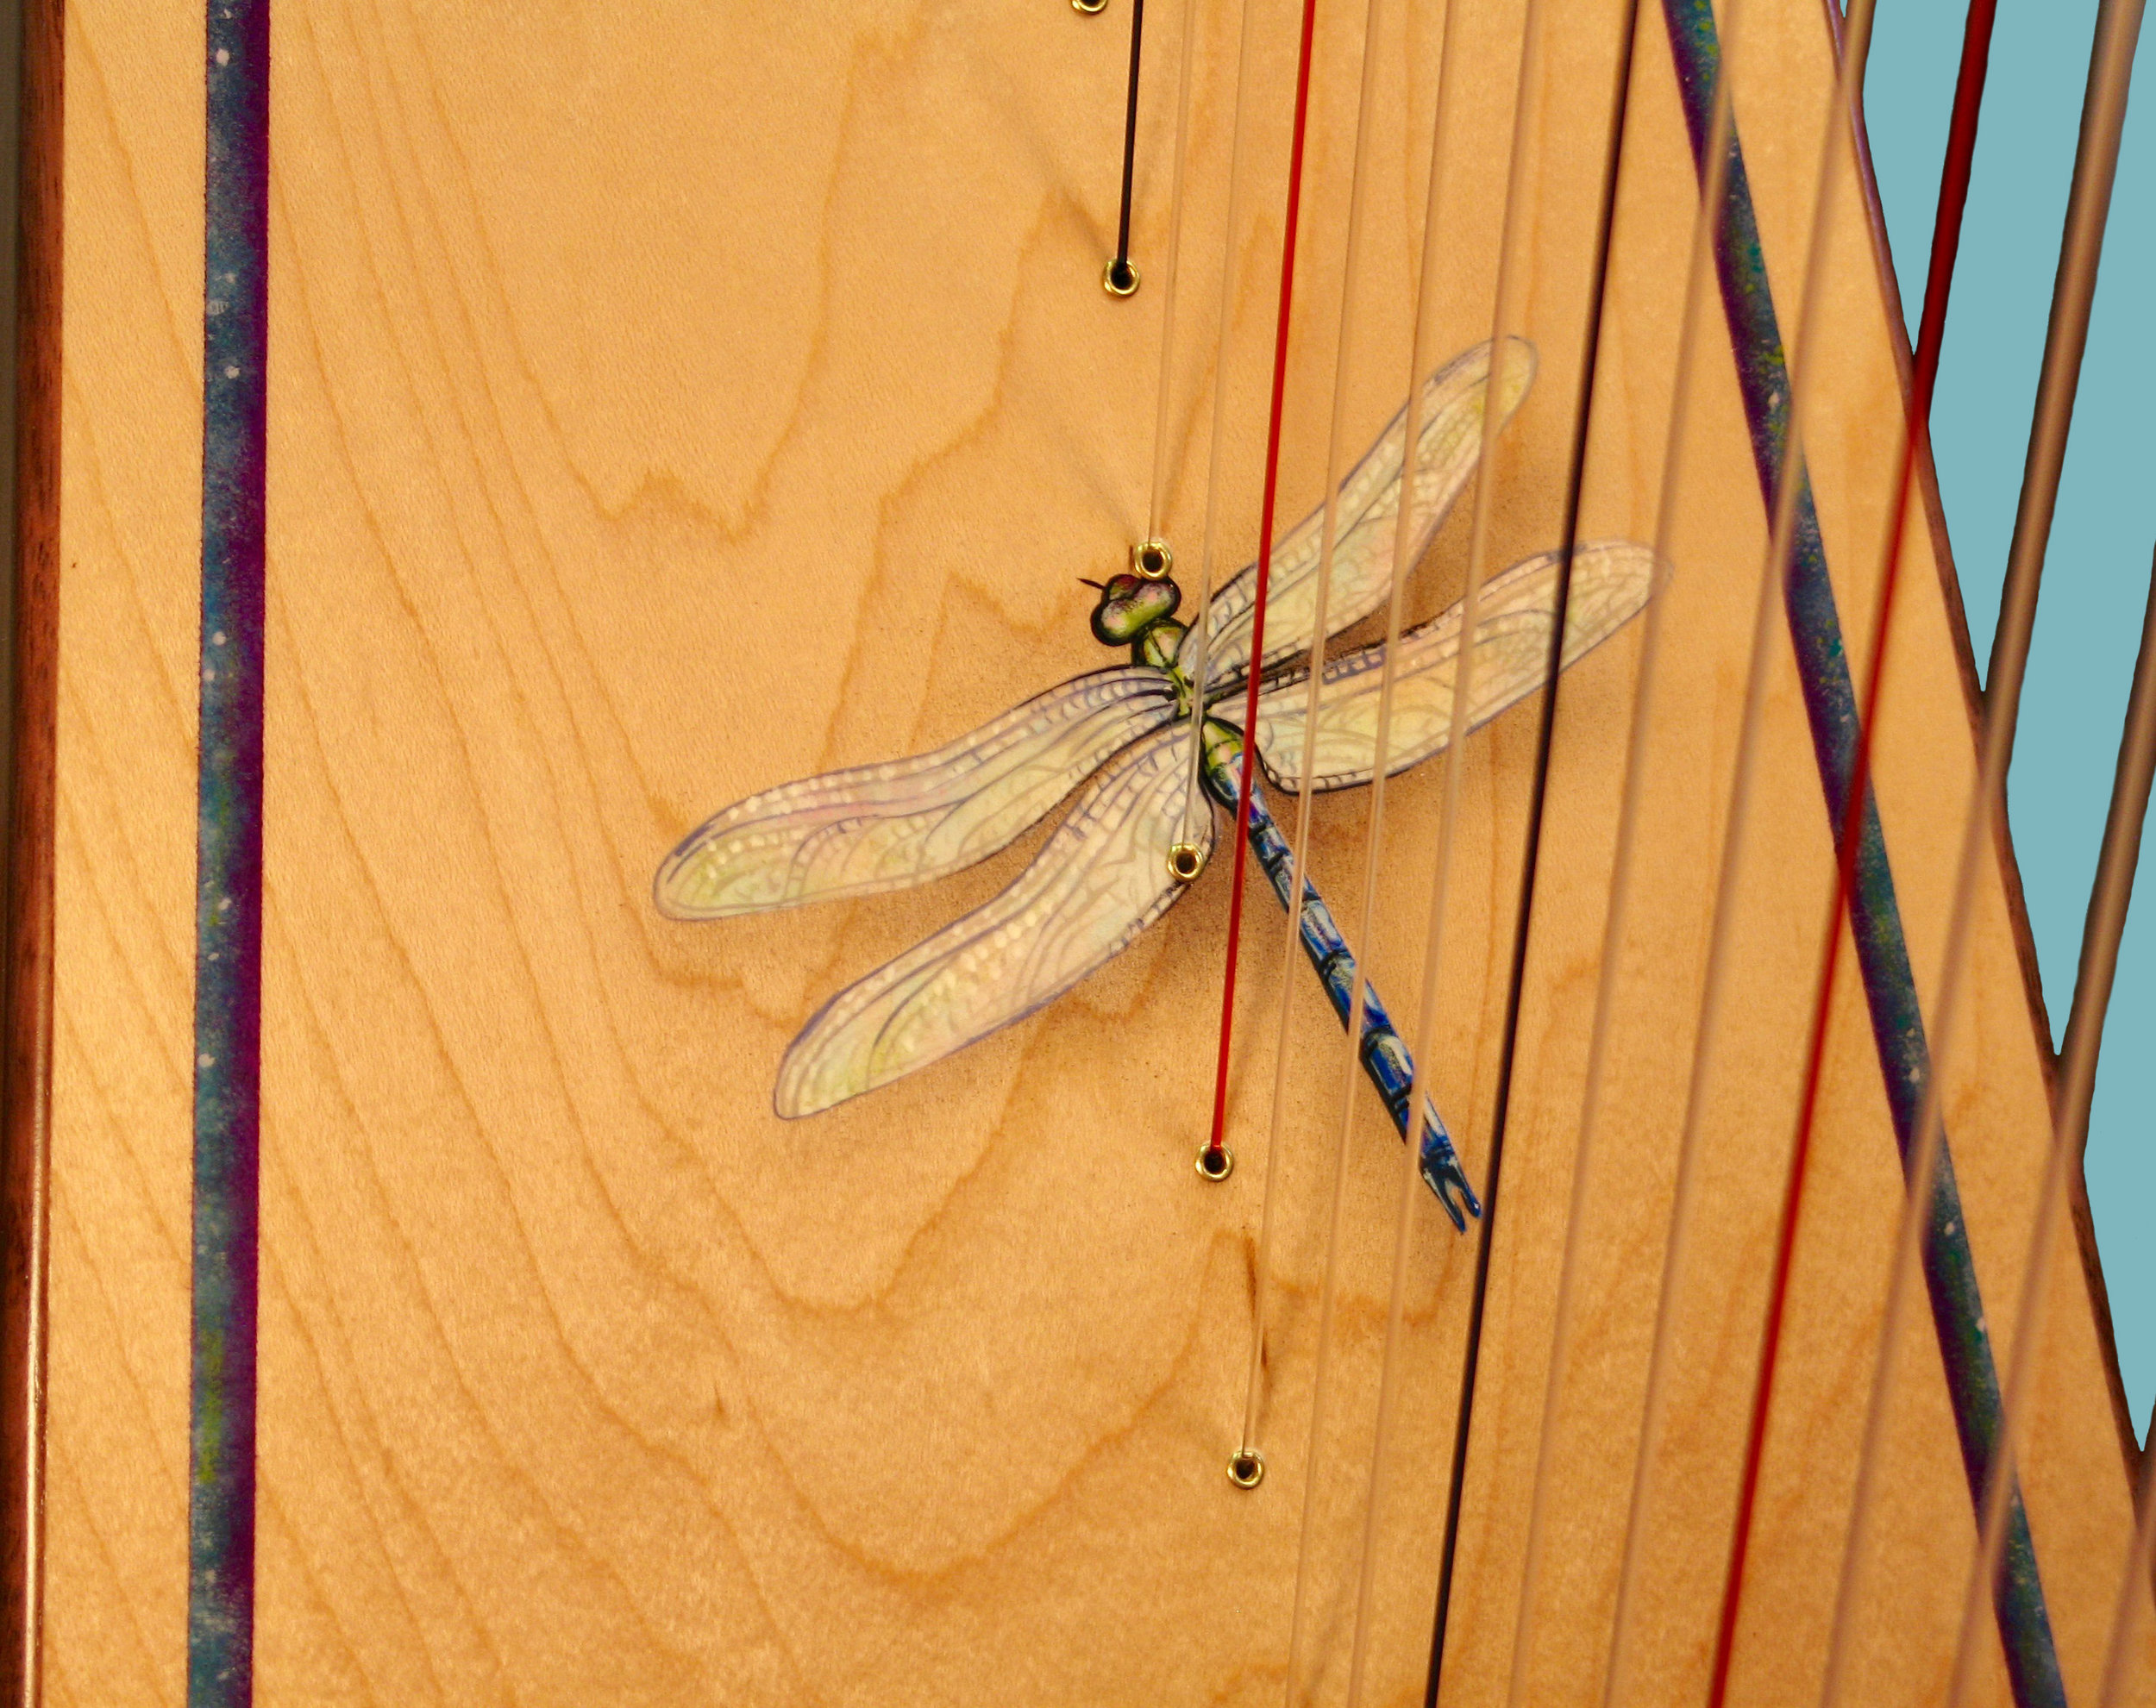 Custom dragonfly and border handpainted by Garen Rees on a harp soundboard.This is a one-of-a-kind harp design requested by a customer.